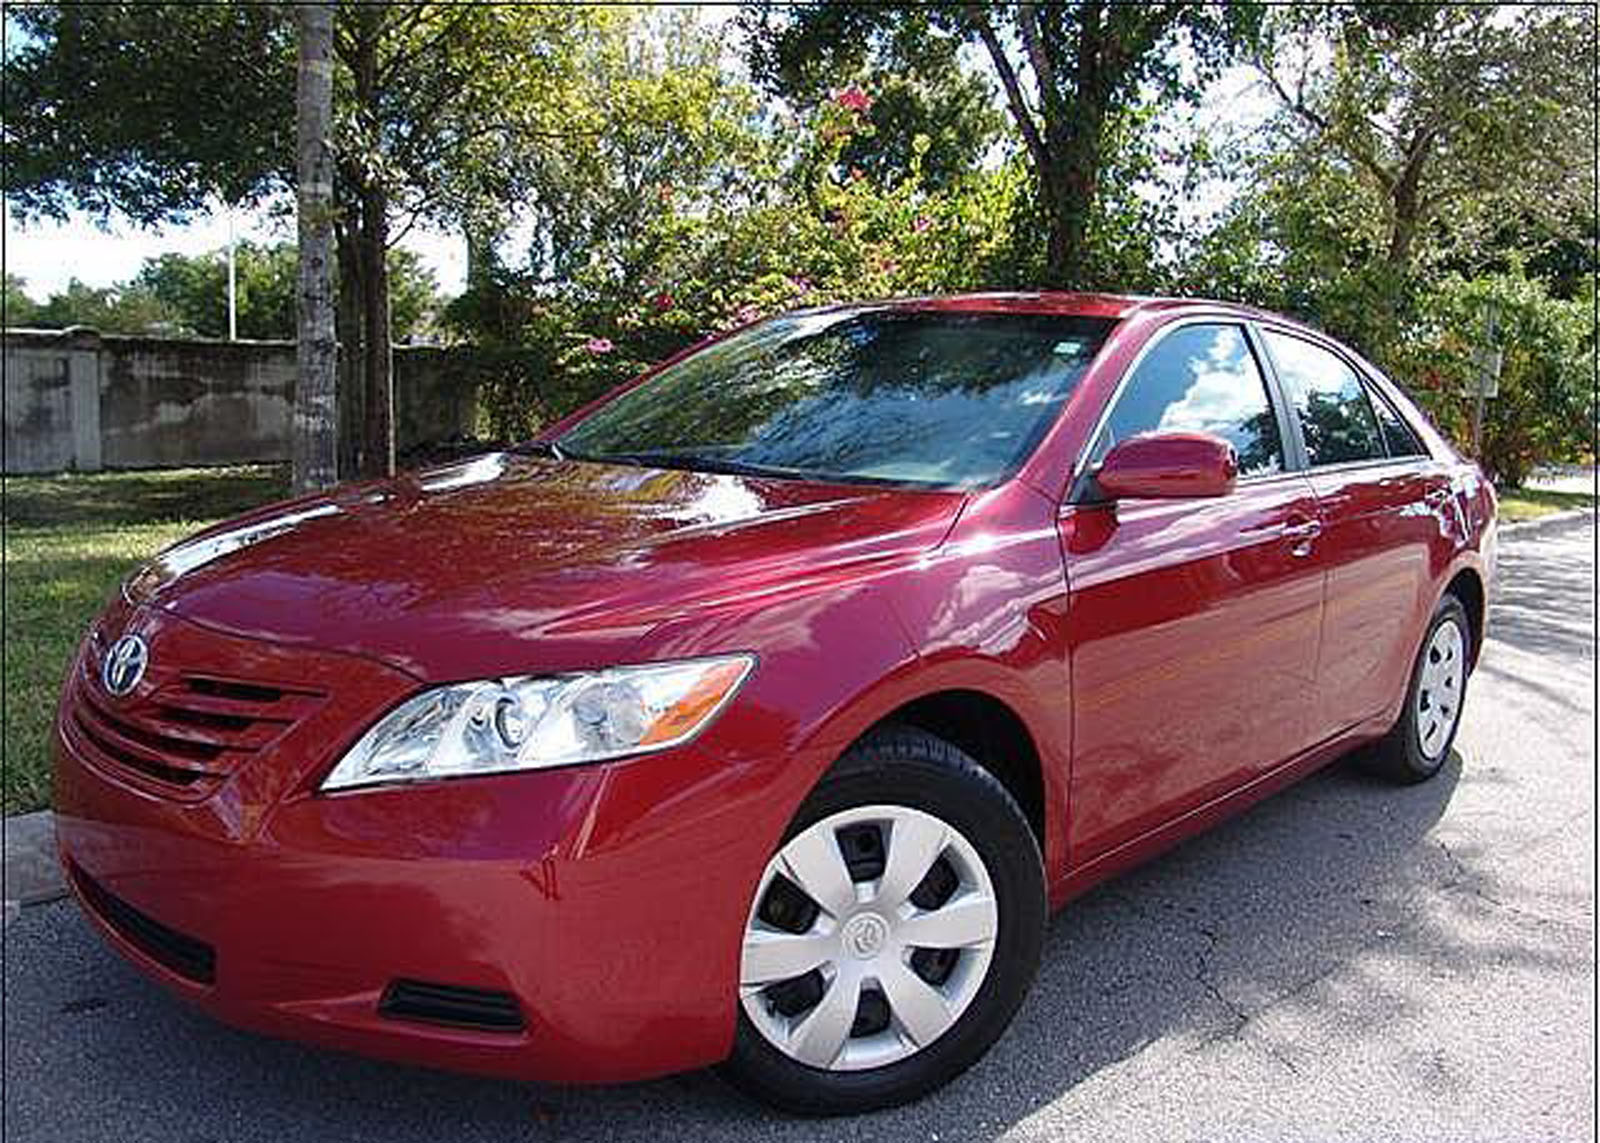 for sale vehicle in upland toyota image img camry ca